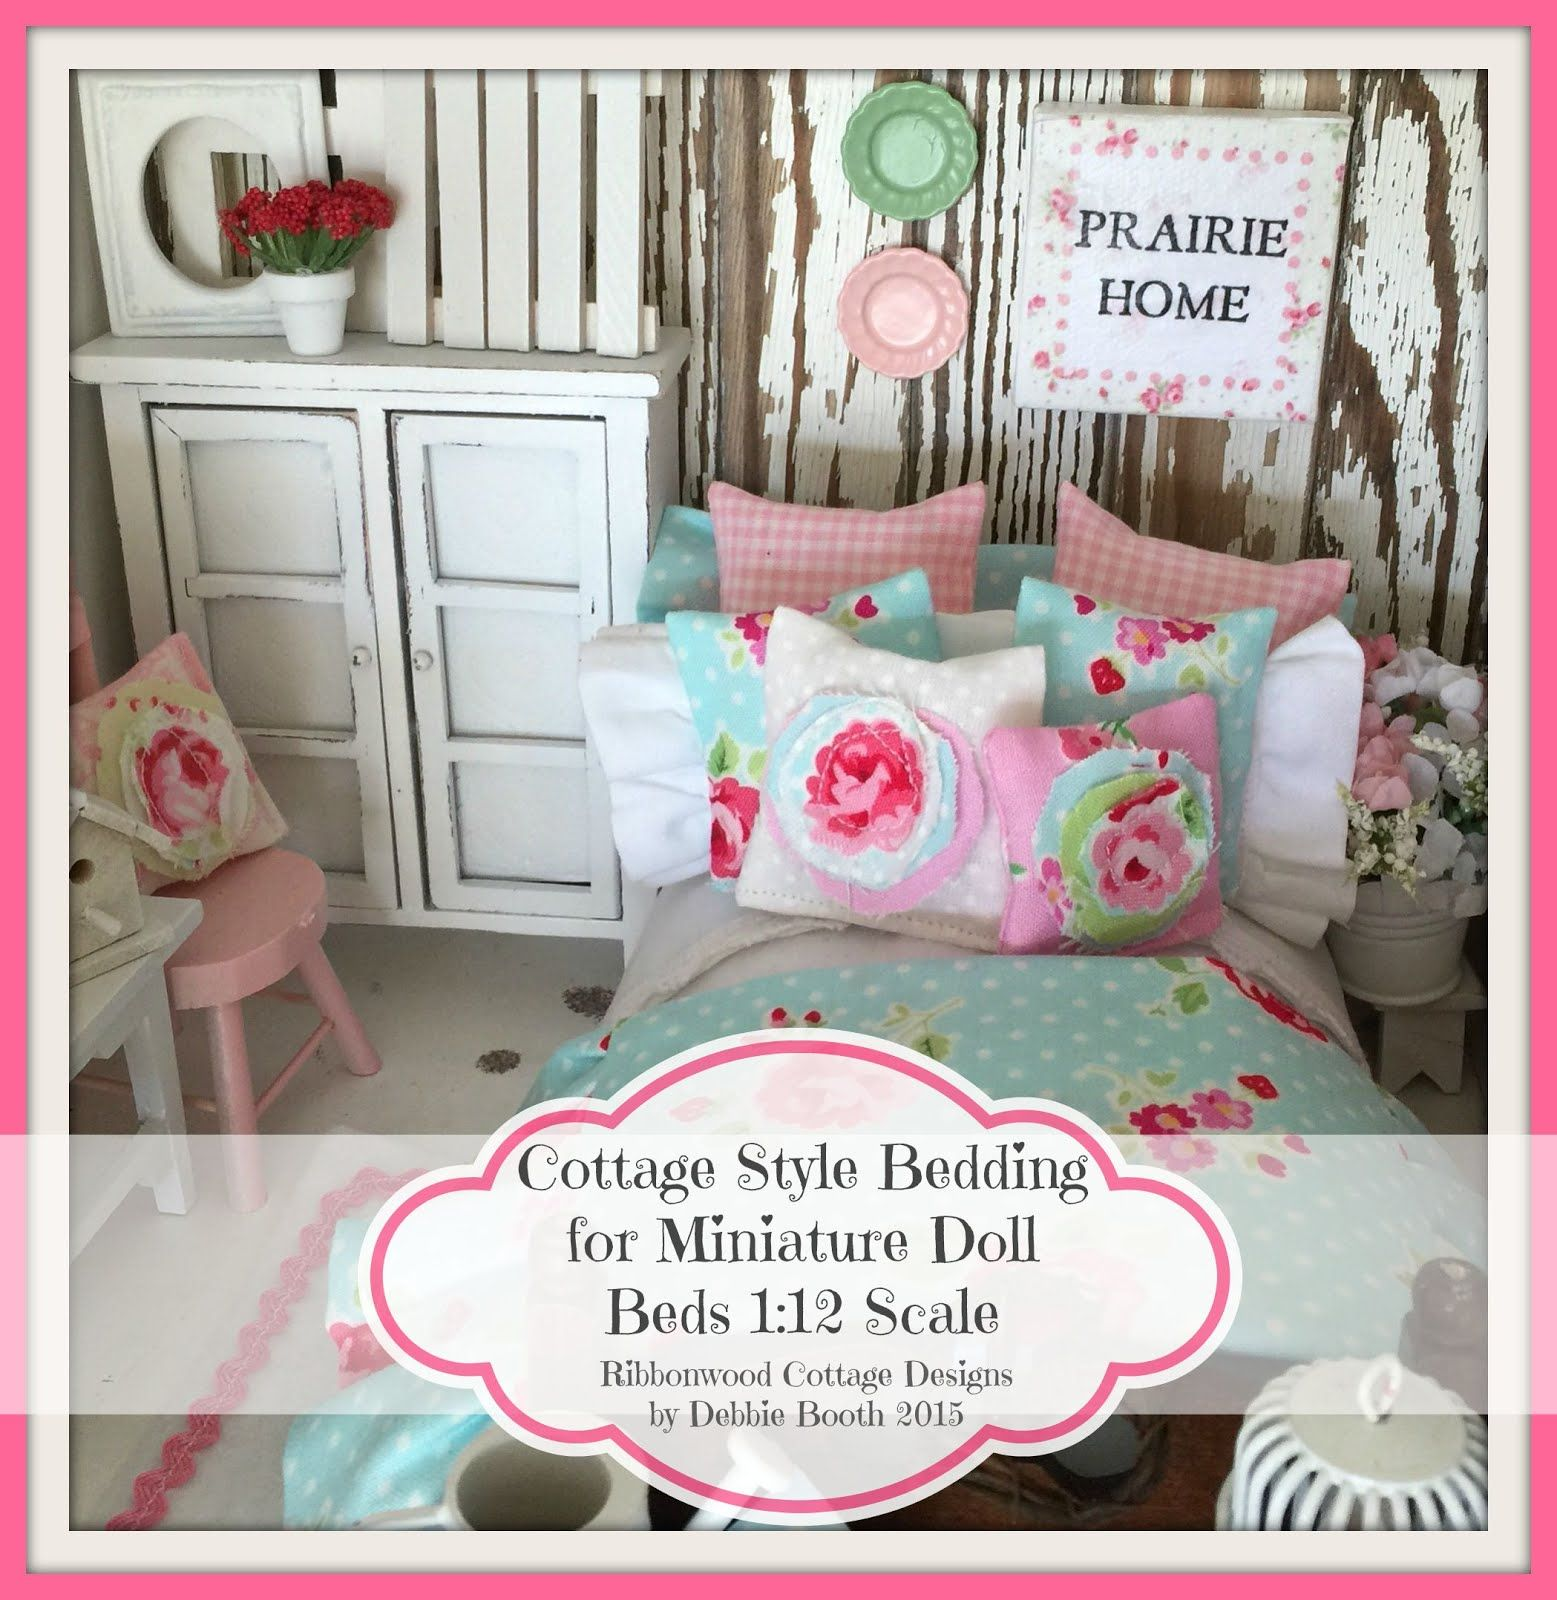 Dollhouse Patterns Free